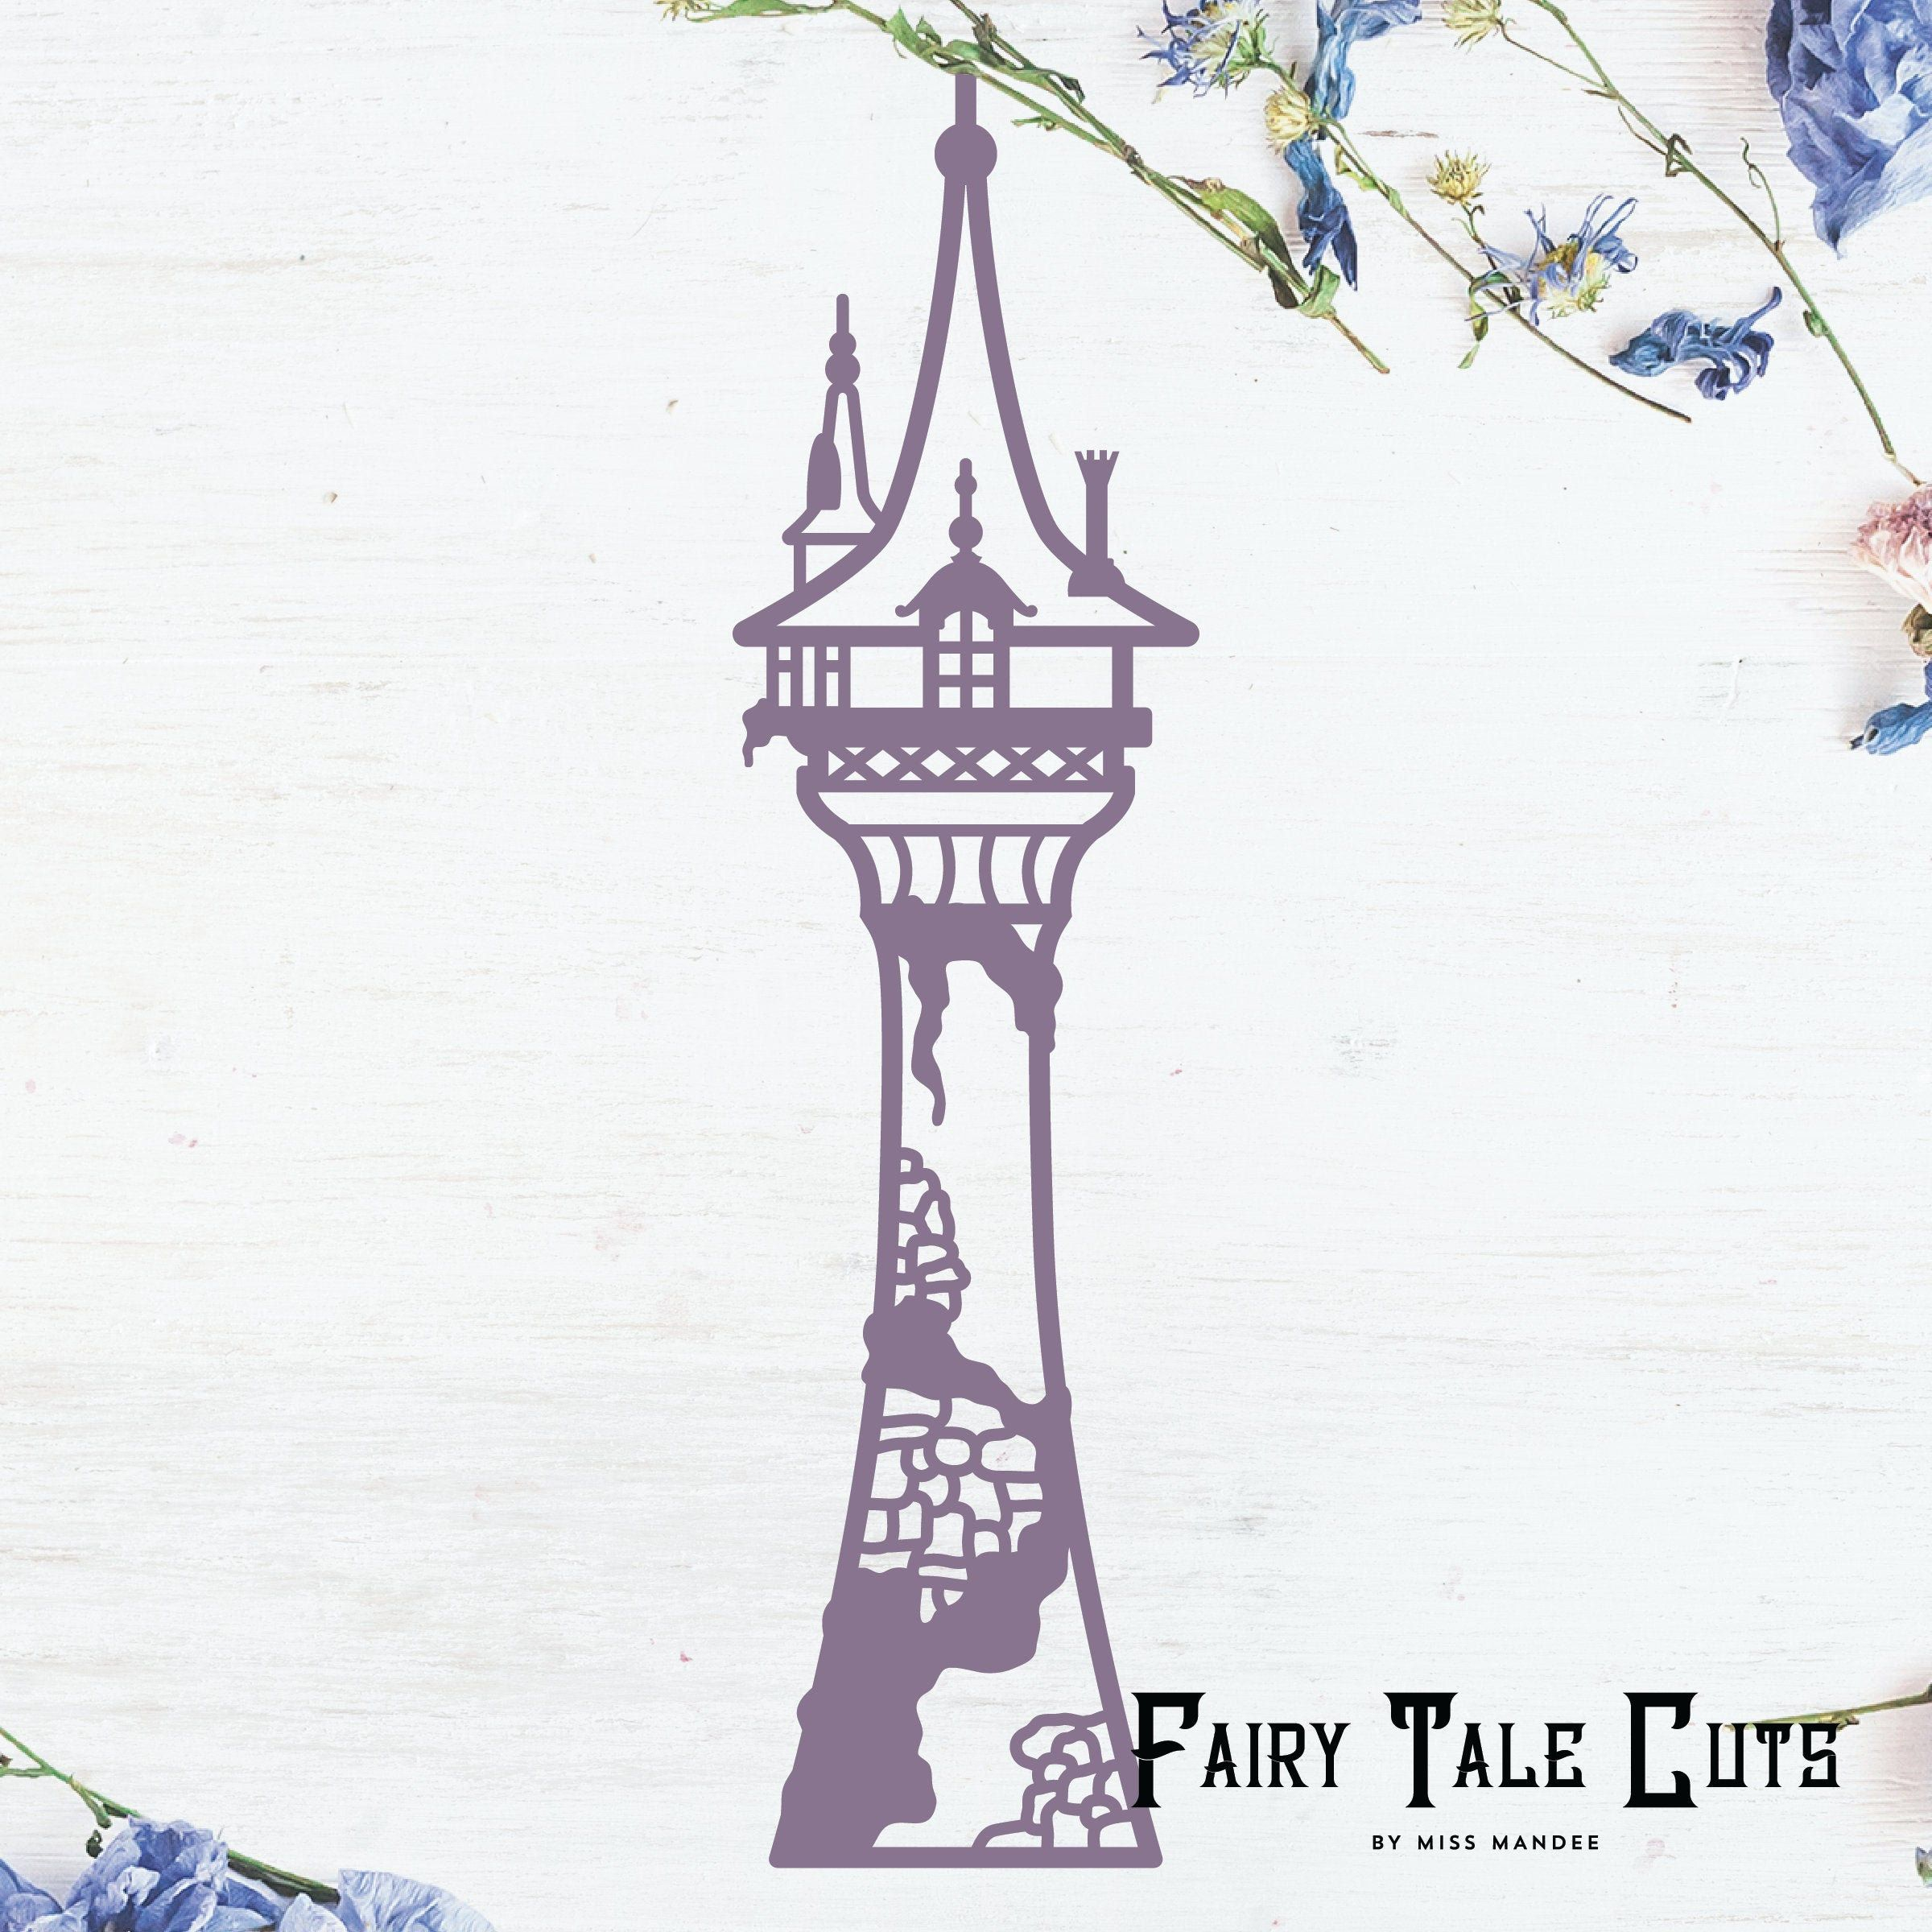 Rapunzel S Tower Tangled Inspired File Design Digital Download Svg Vector Cricut Silhouette Clip Art In 2020 Rapunzel Tower Rapunzel Drawing Disney Tangled Tattoo